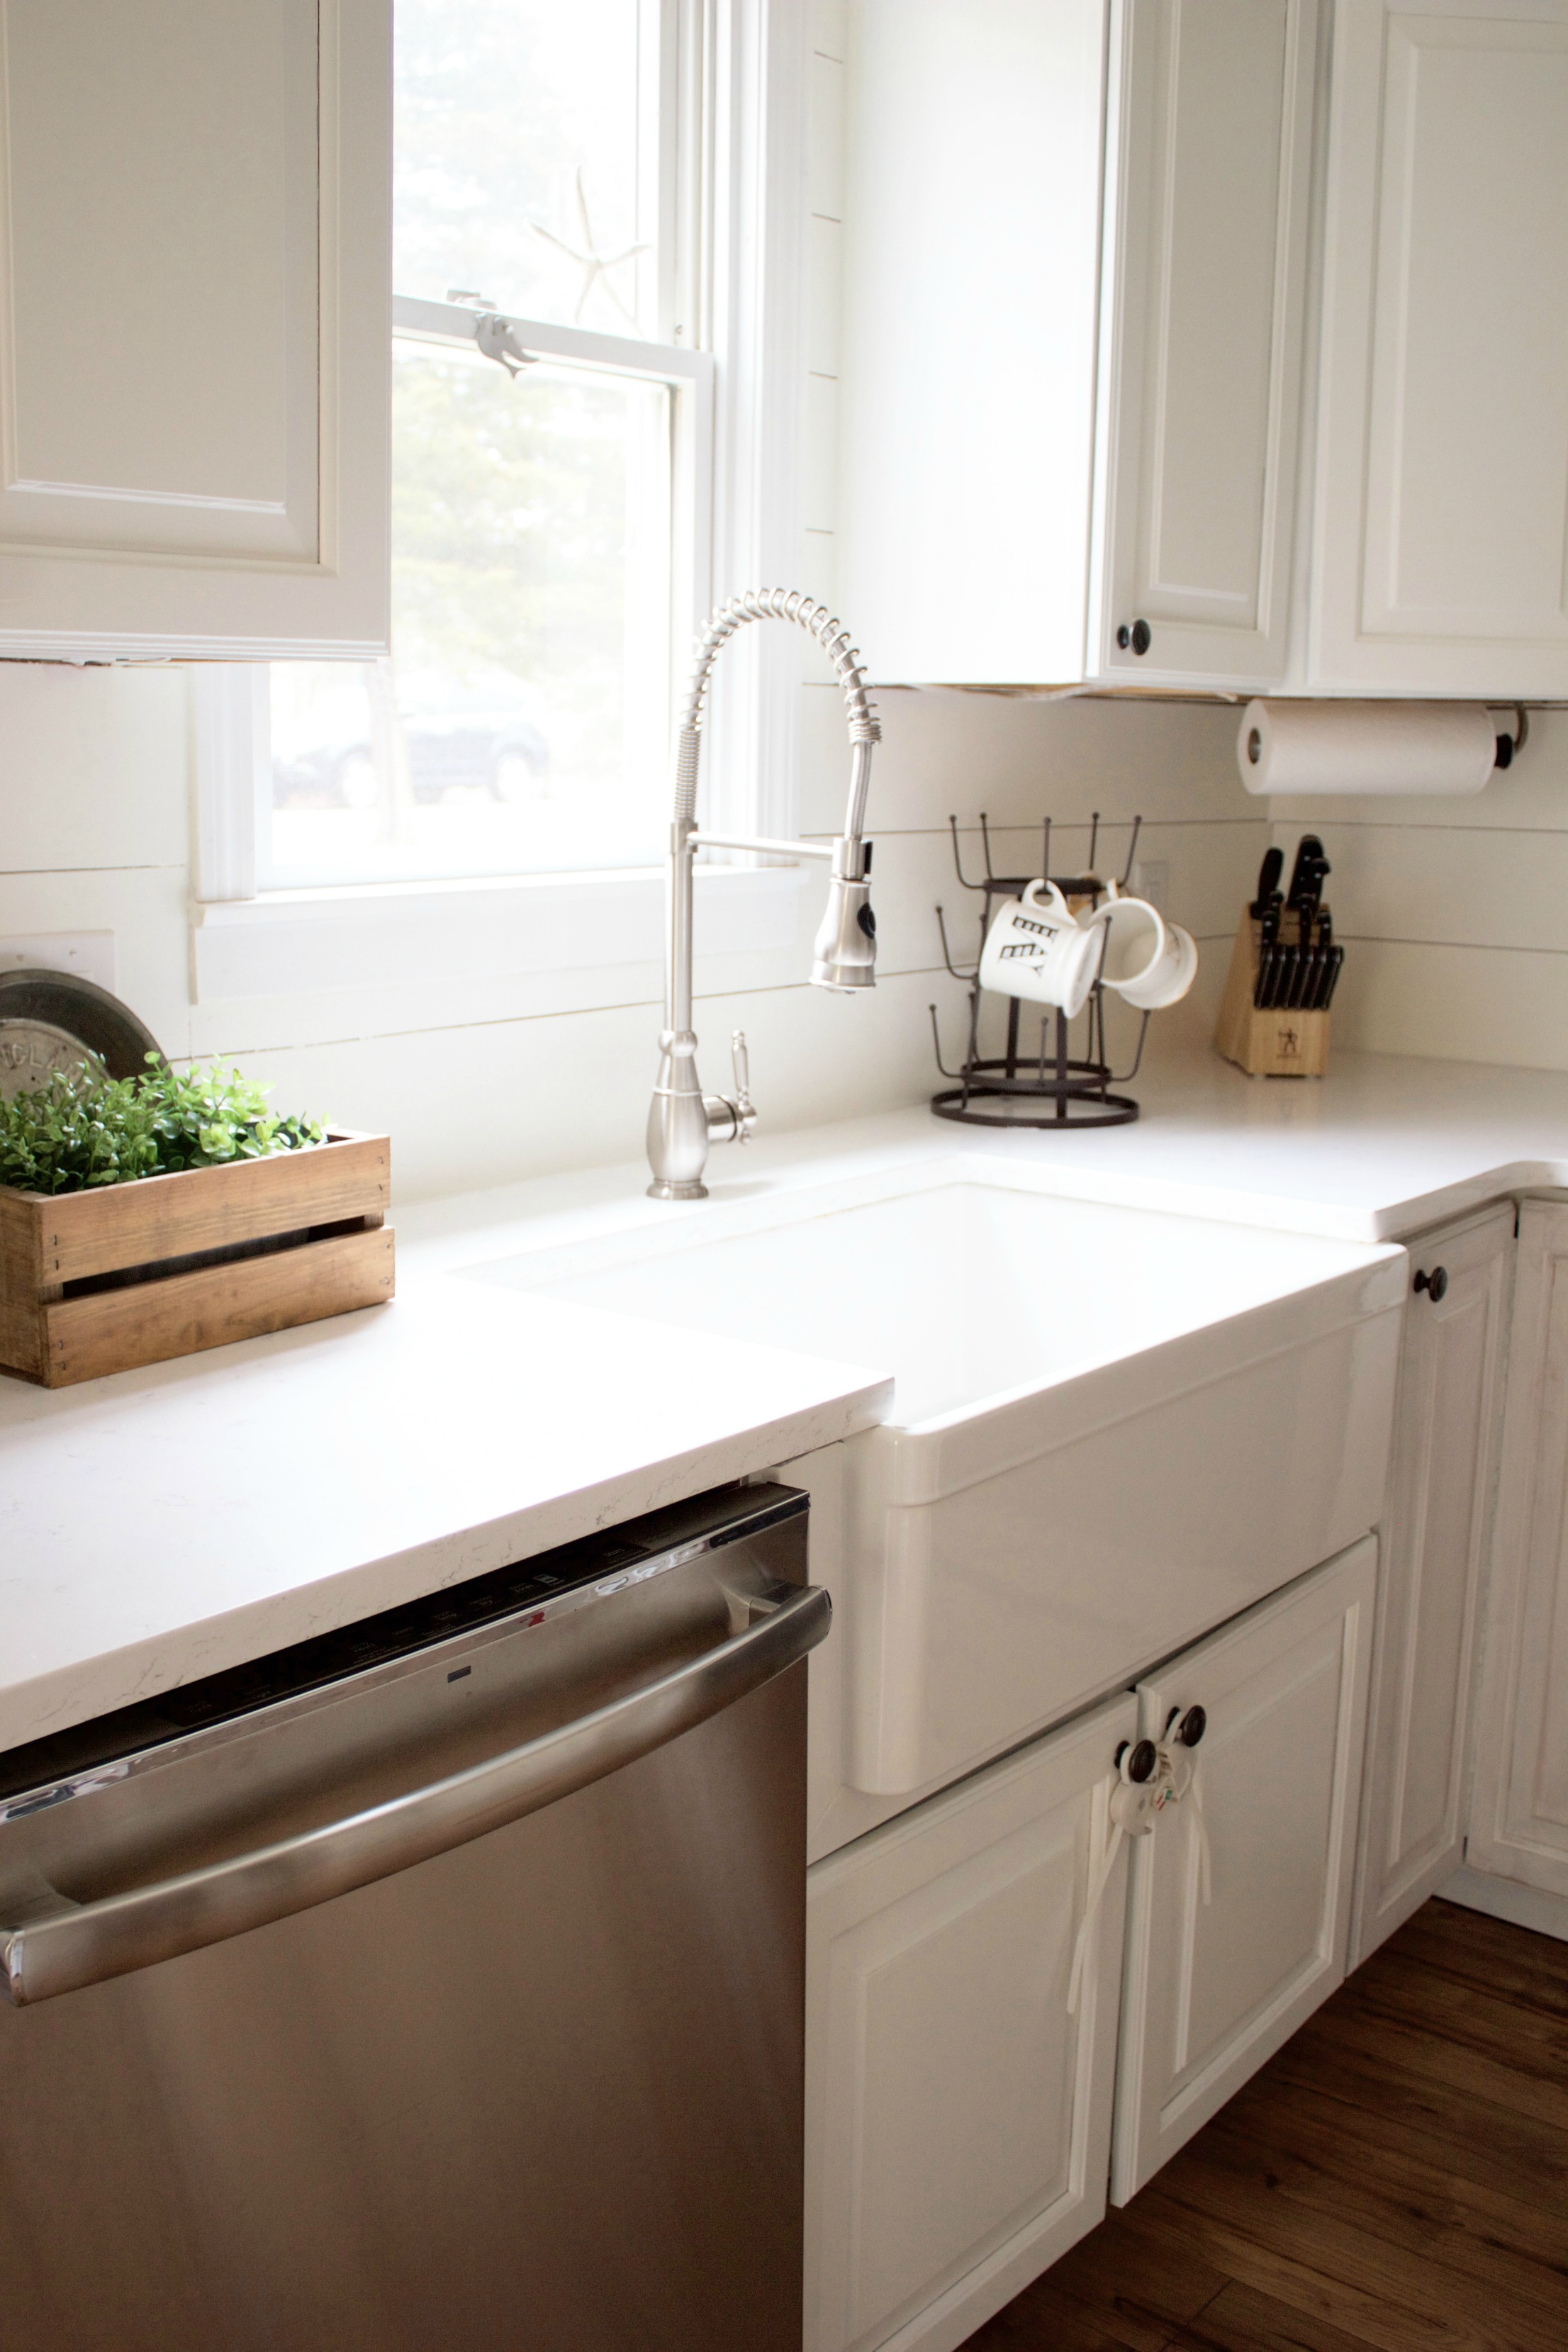 Home // How to Choose a Farmhouse Sink - Lauren McBride